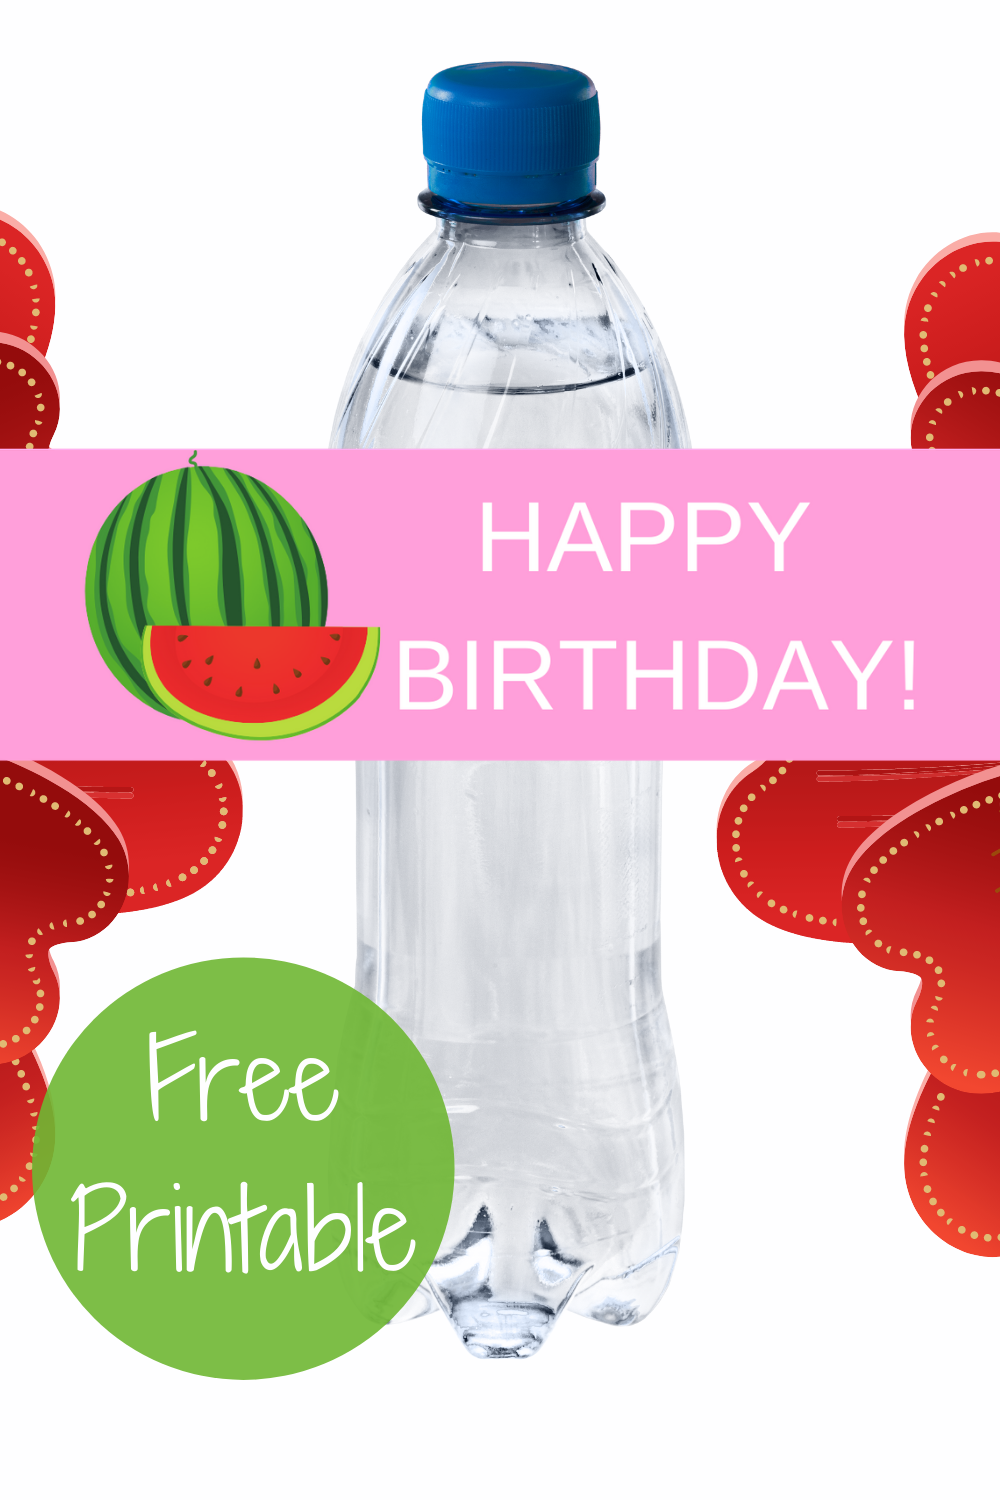 free download: watermelon themed water bottle wrapper